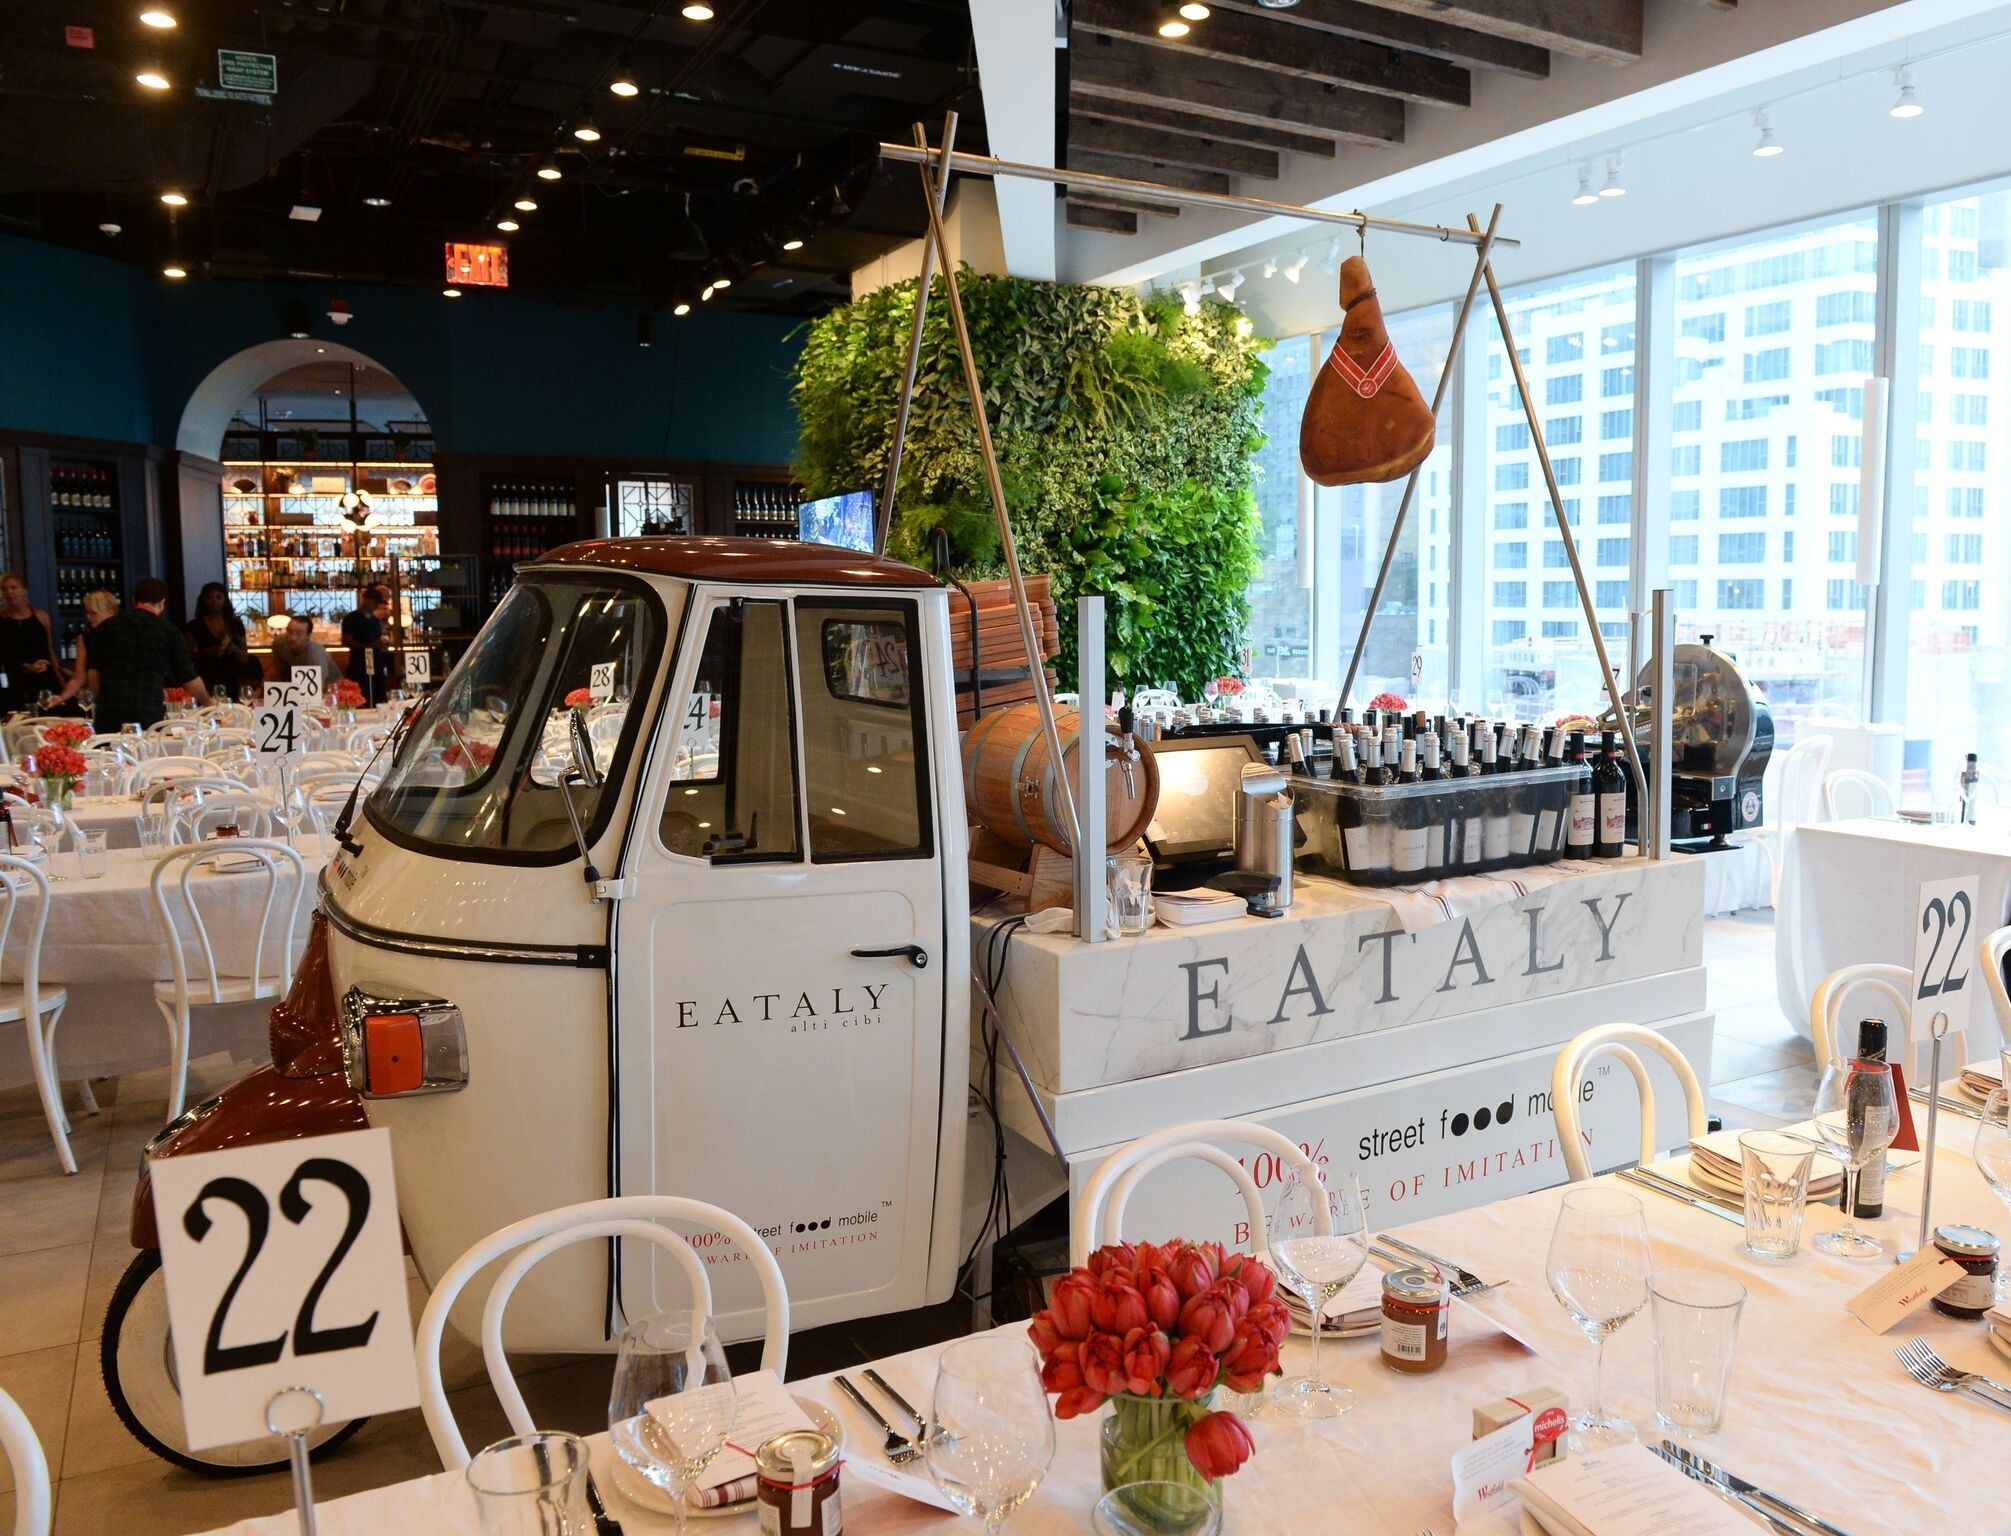 Westfield Century City's new food vendors—including Eataly—start opening